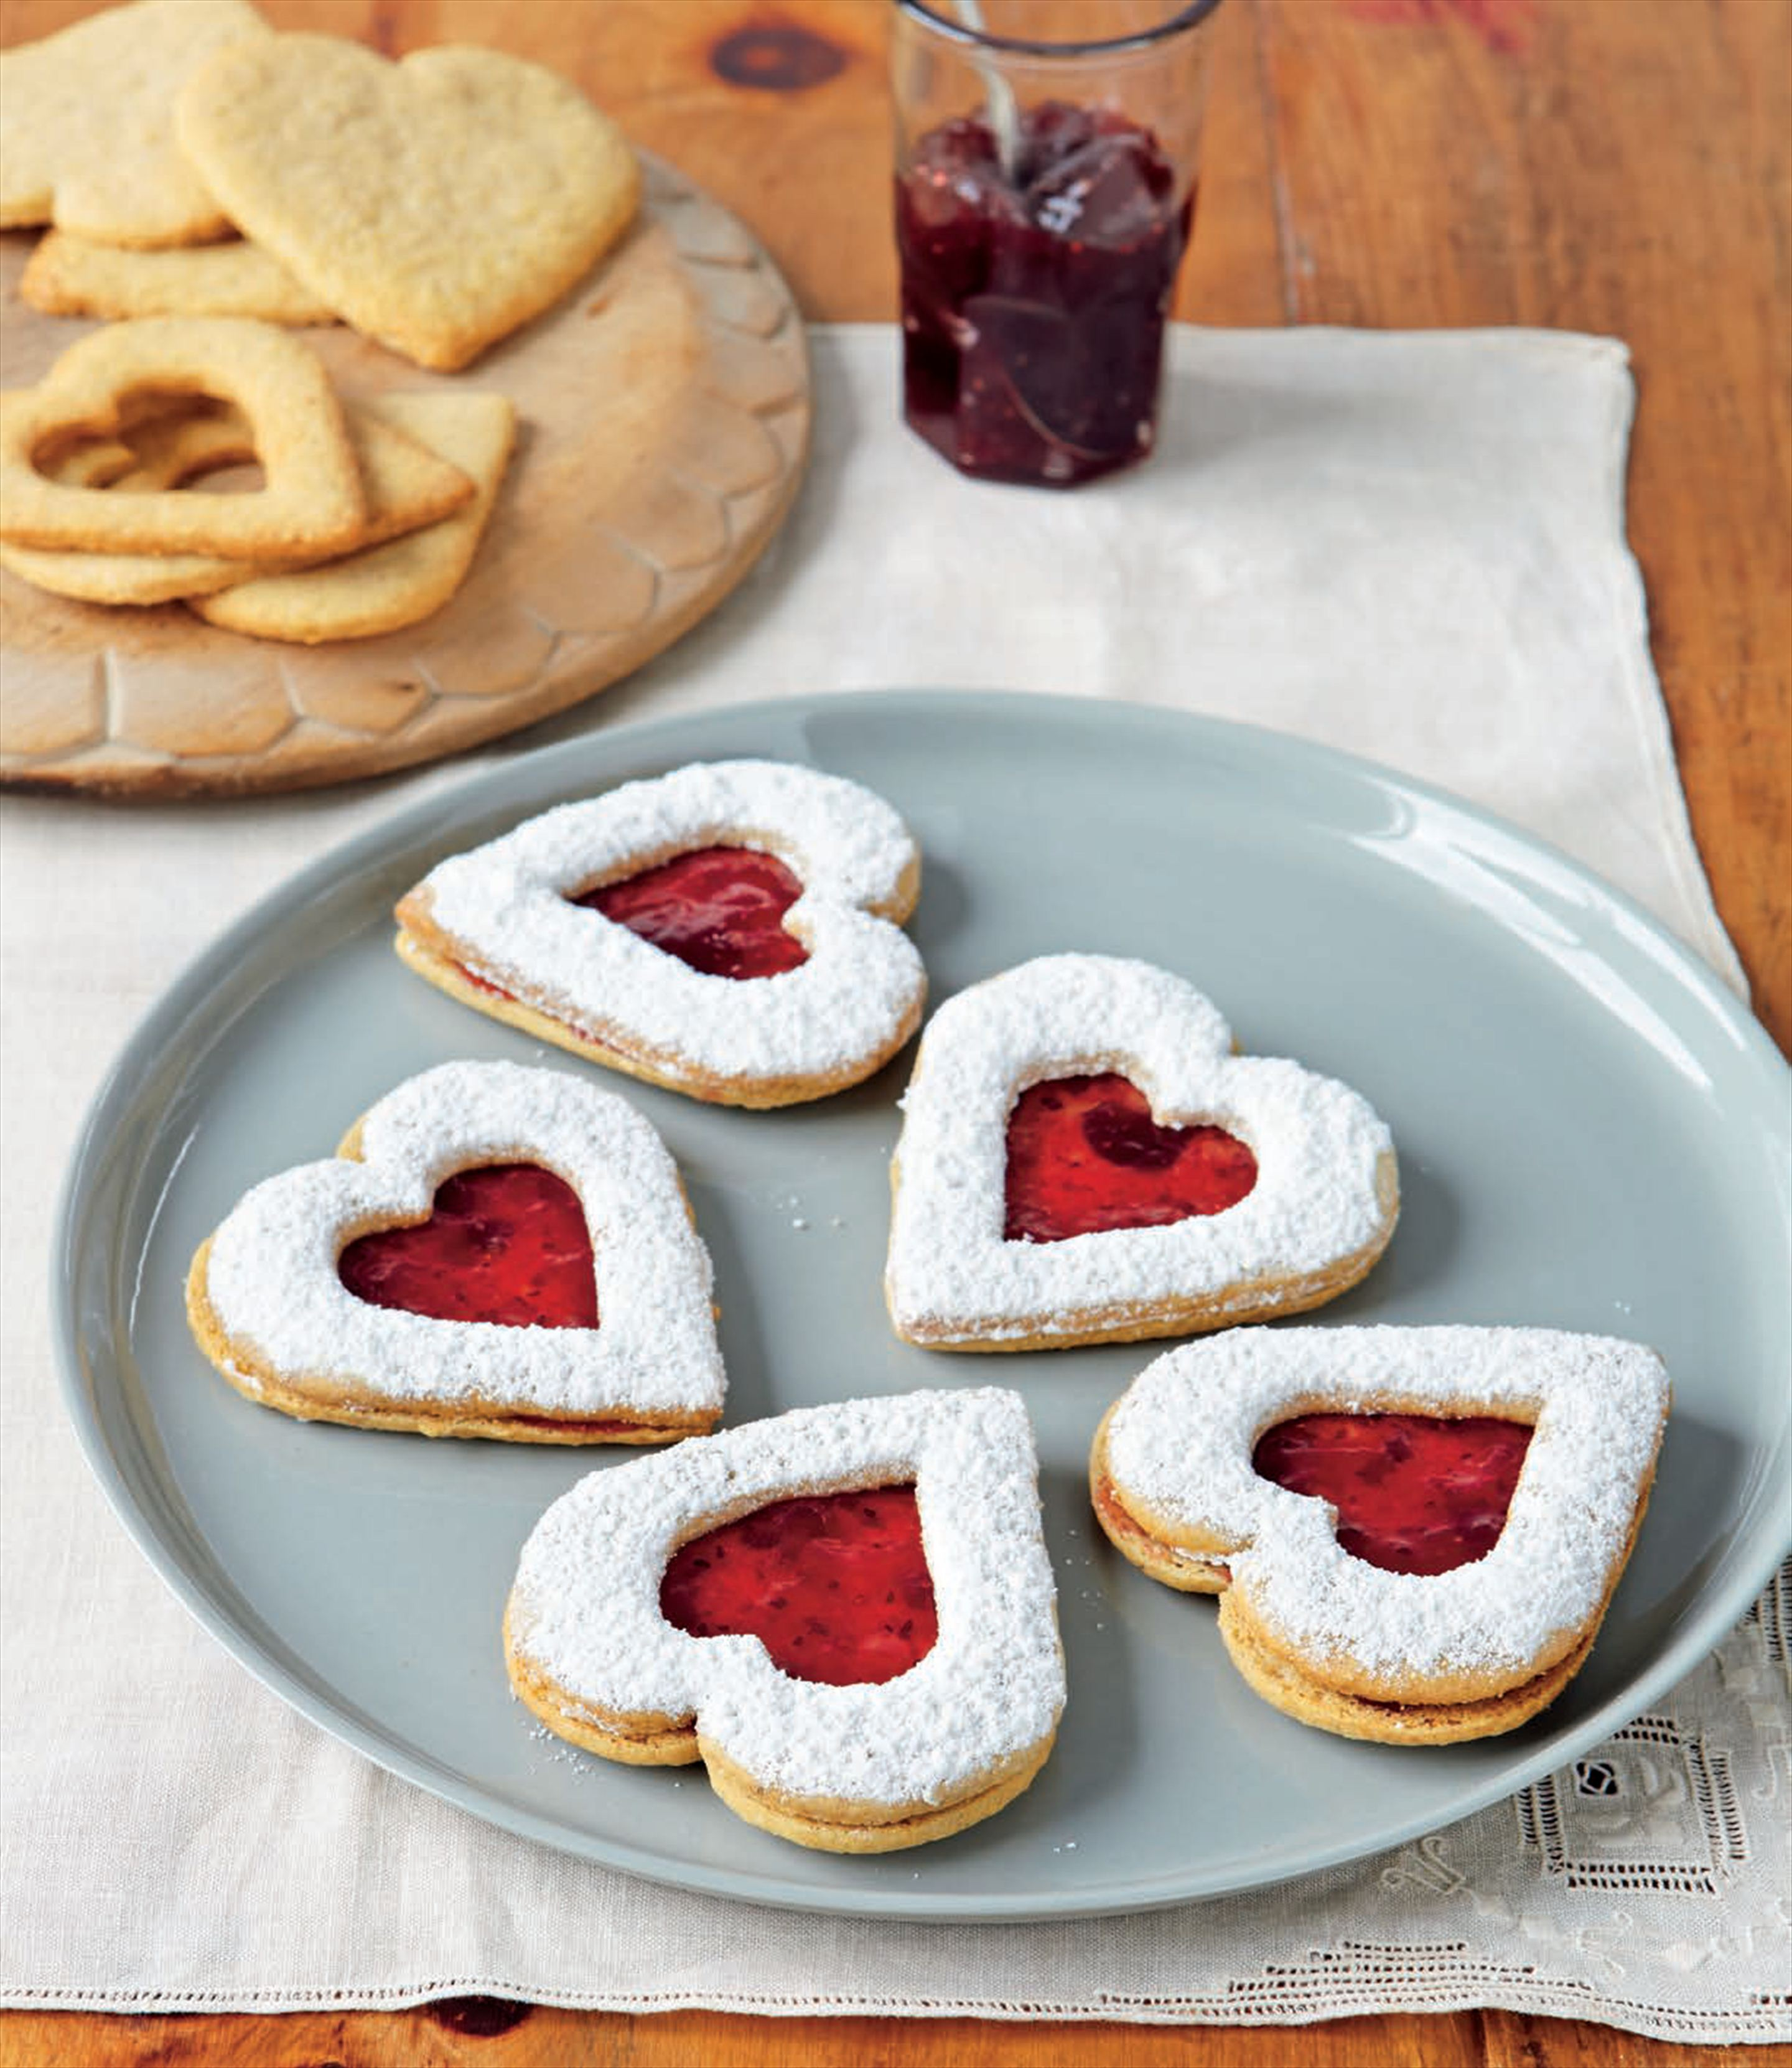 Linzer biscuits